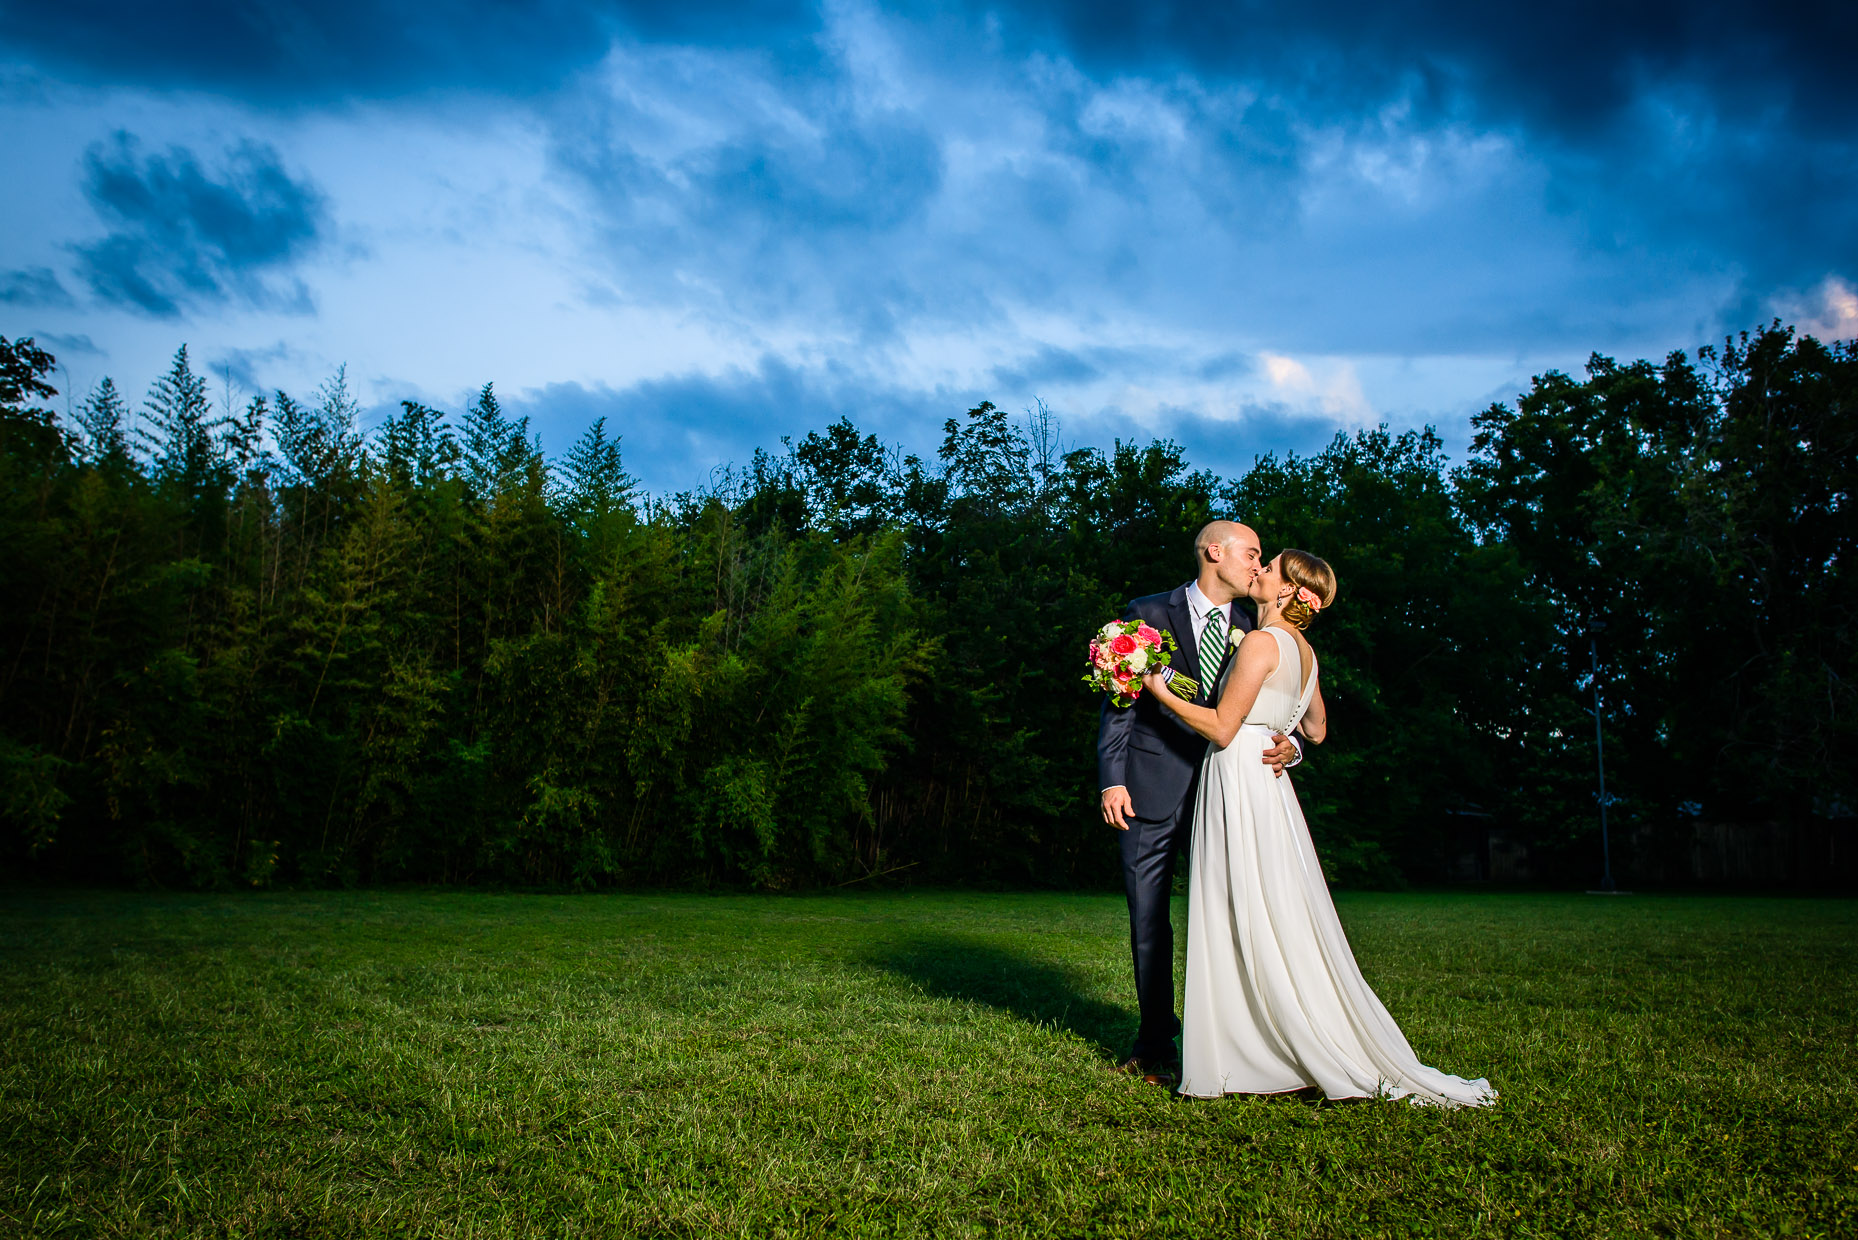 Austin-Wedding-Photographer-Green-Pastures-Dramatic-Night-Portrait.jpg